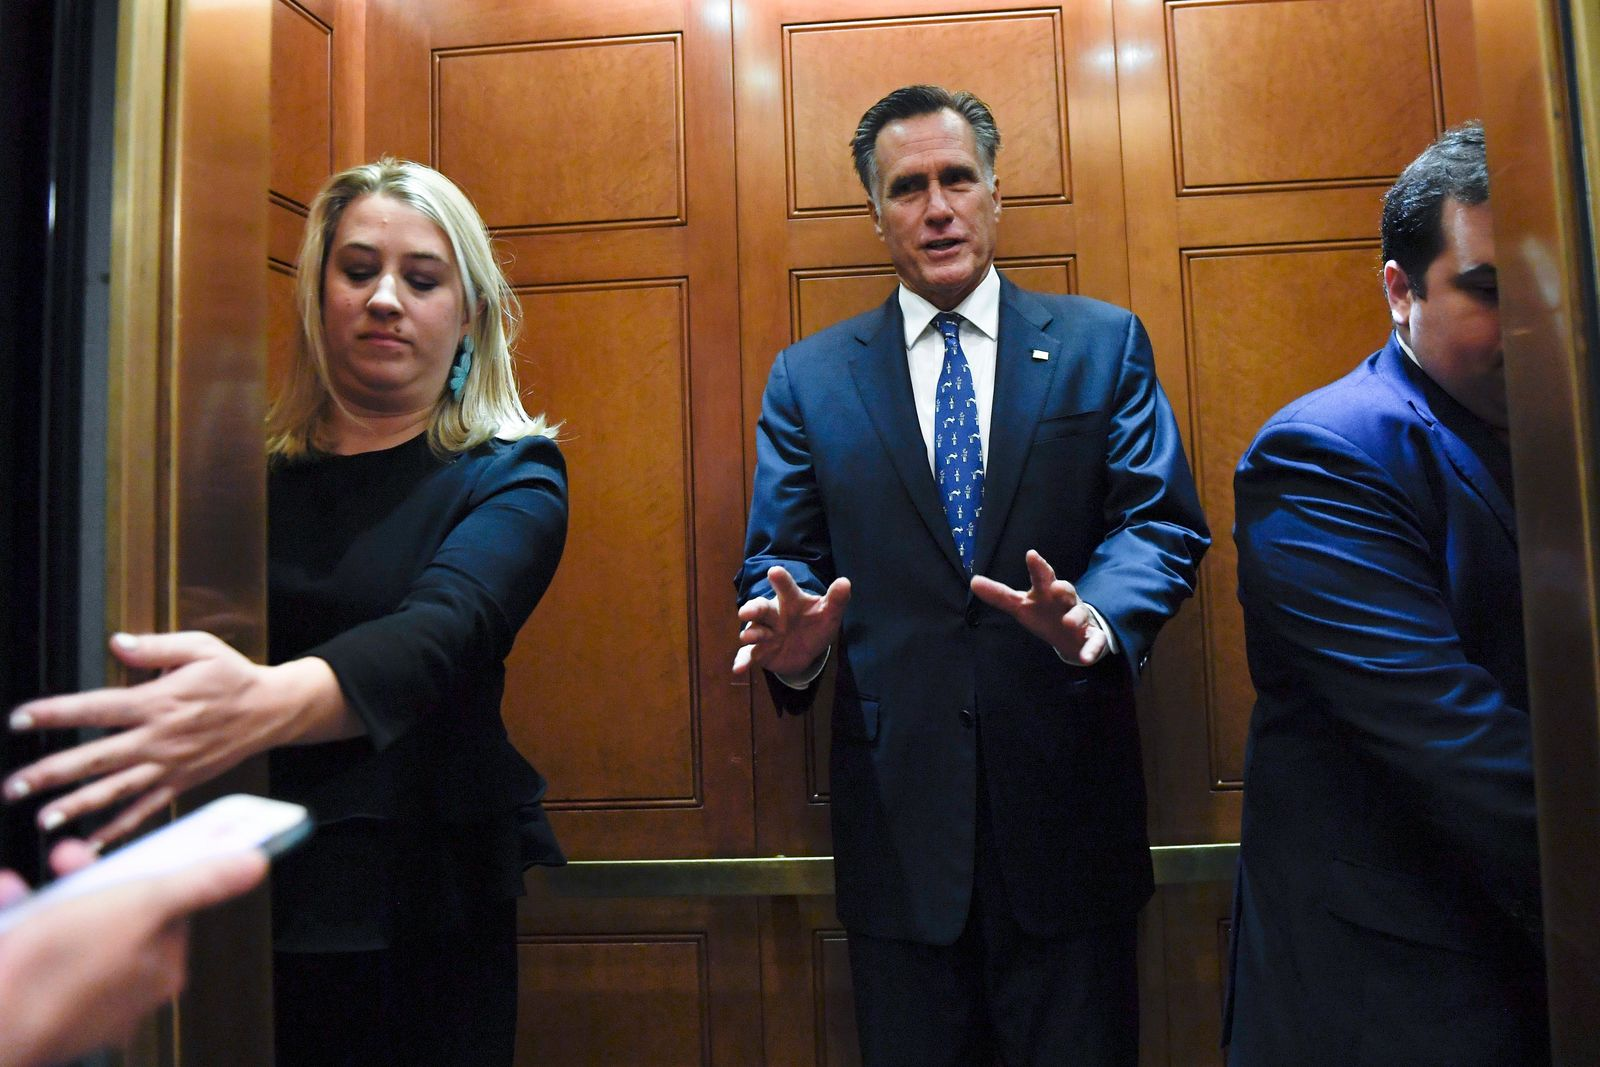 FILE - In this Nov. 5, 2019, file photo, Sen. Mitt Romney, R-Utah, gets in an elevator as he is followed by reporters on Capitol Hill in Washington. Republicans have no unified argument in the impeachment inquiry of Donald Trump in large part because they can't agree on how to defend the president.  (AP Photo/Susan Walsh, File)